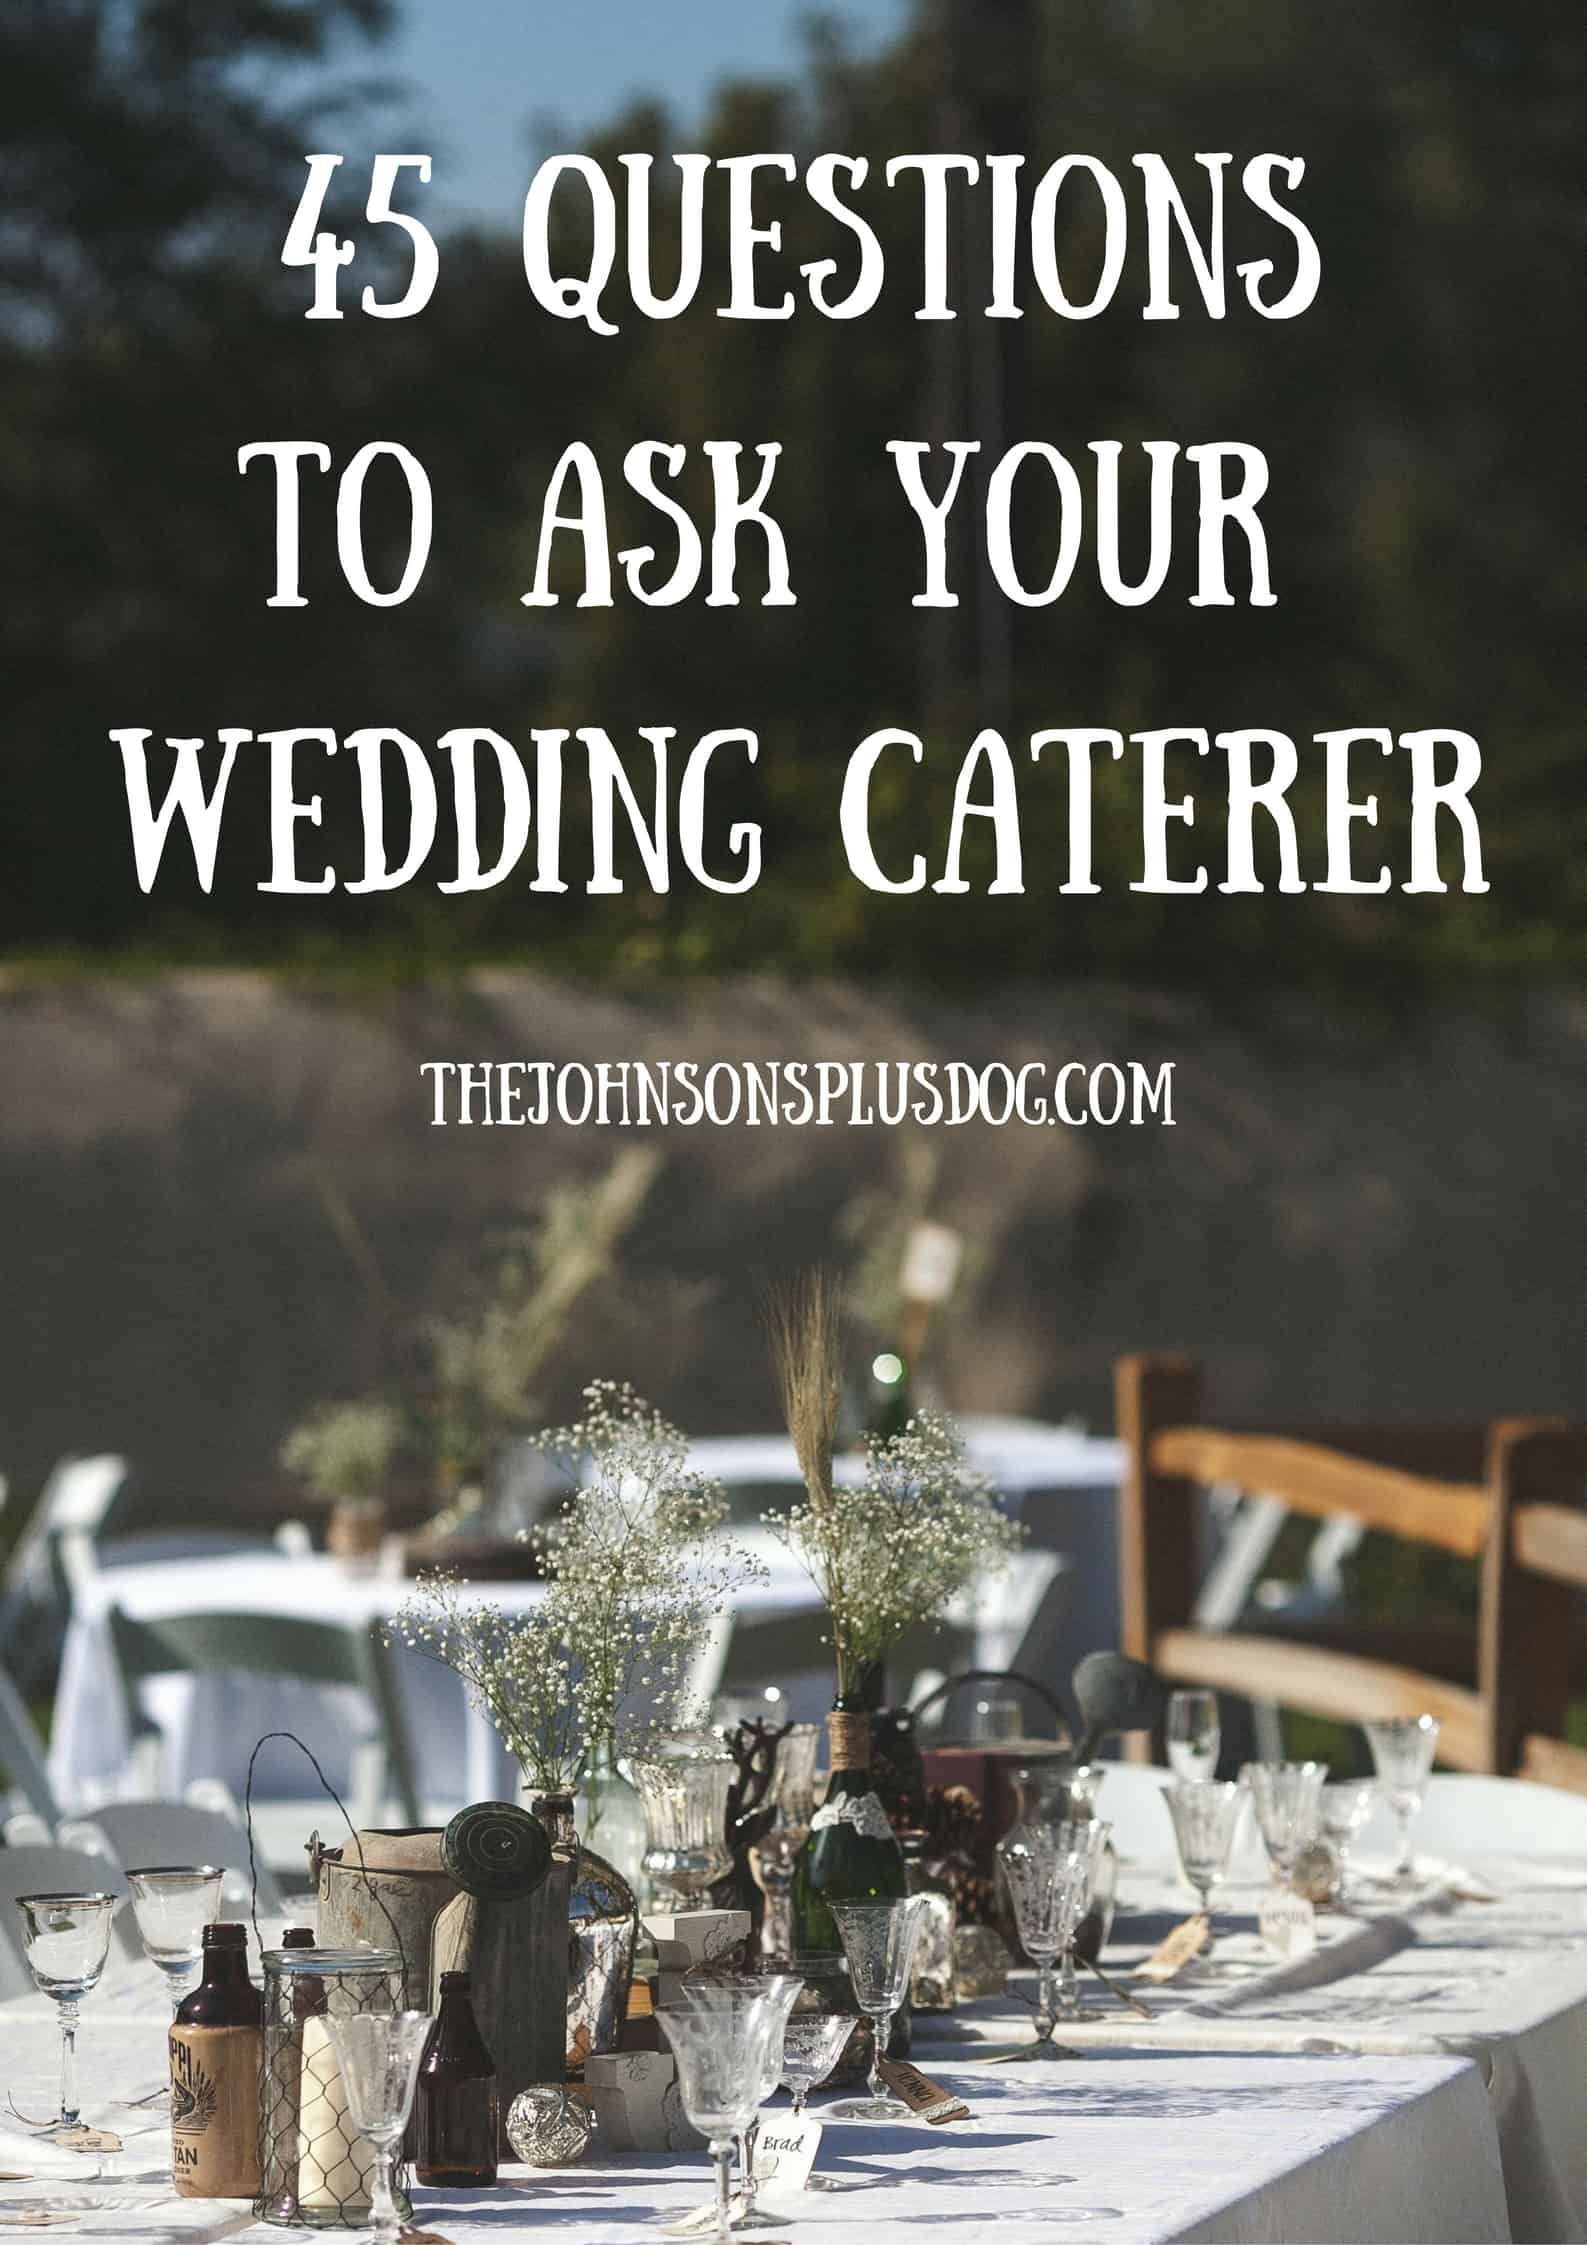 45 questions to ask your wedding caterer | What to ask wedding caterer | wedding planning advice